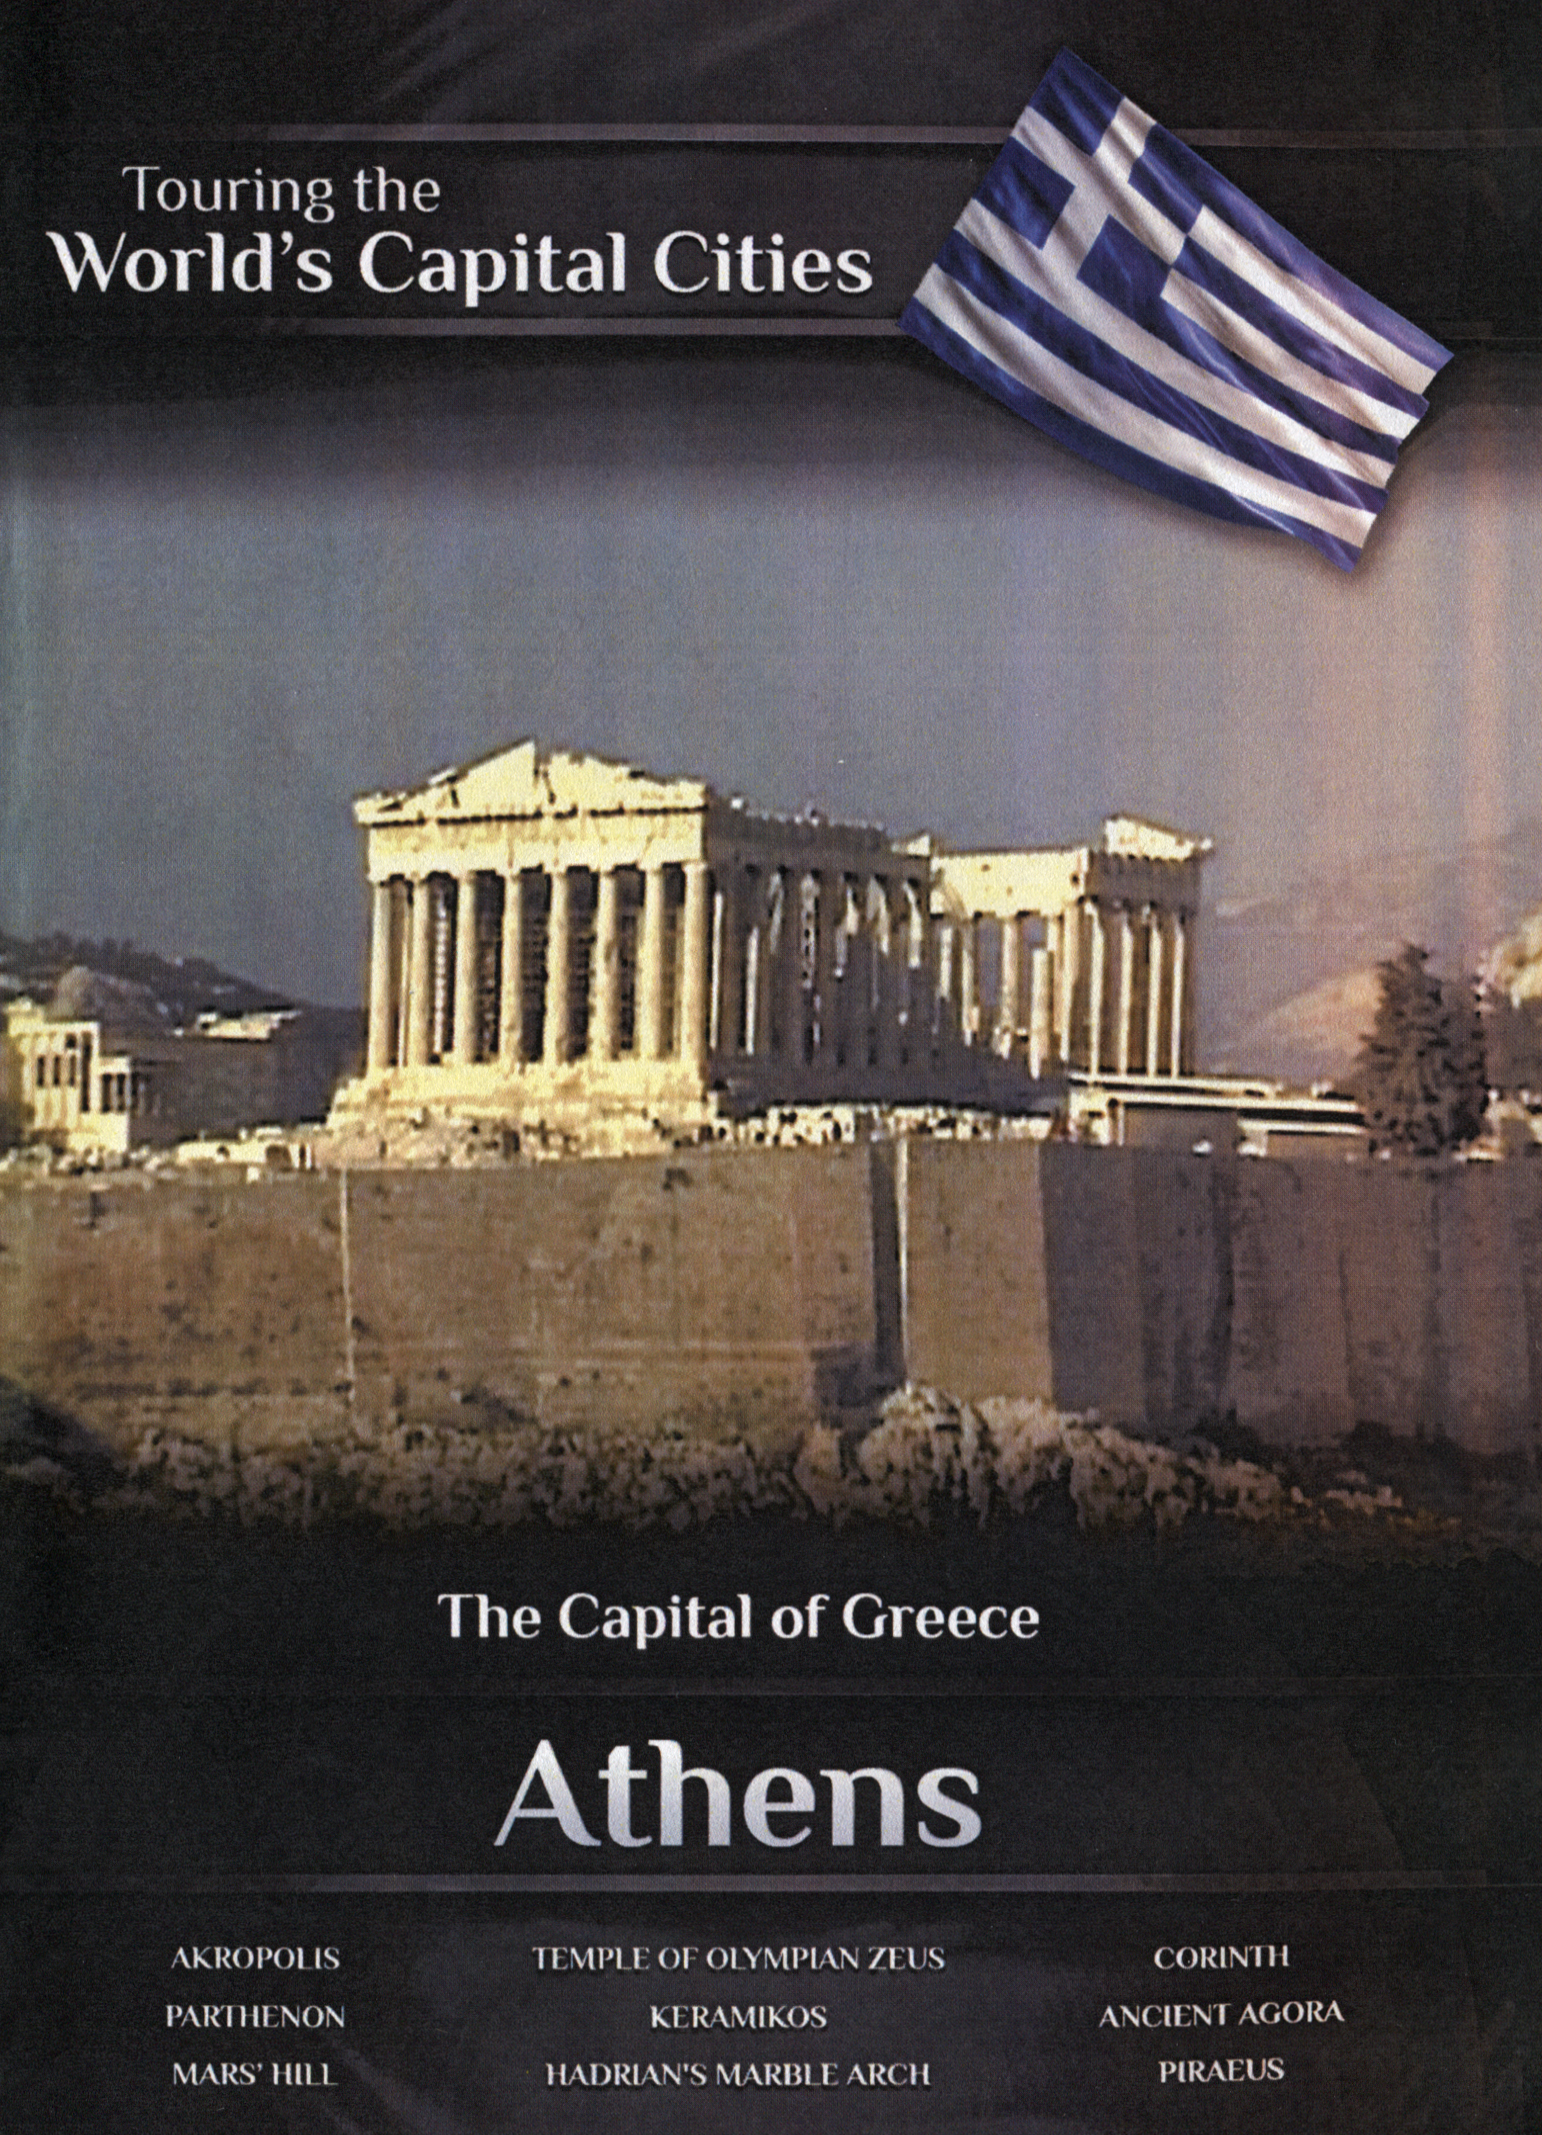 Touring the World's Capital Cities: The Capital of Greece - Athens